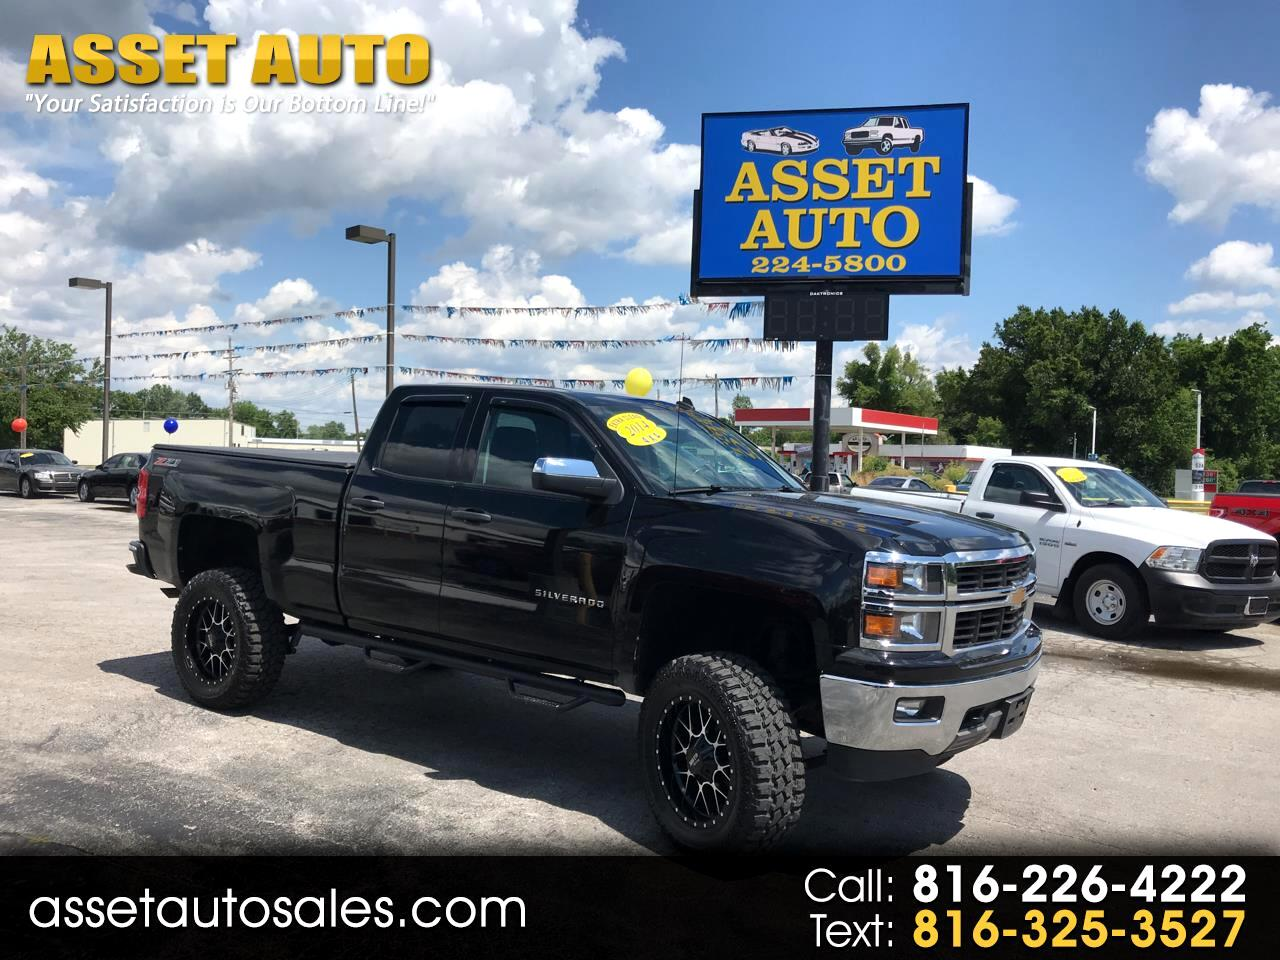 2014 Chevrolet Silverado 1500 LT Double Cab 4WD - LIFTED SUSPENSION